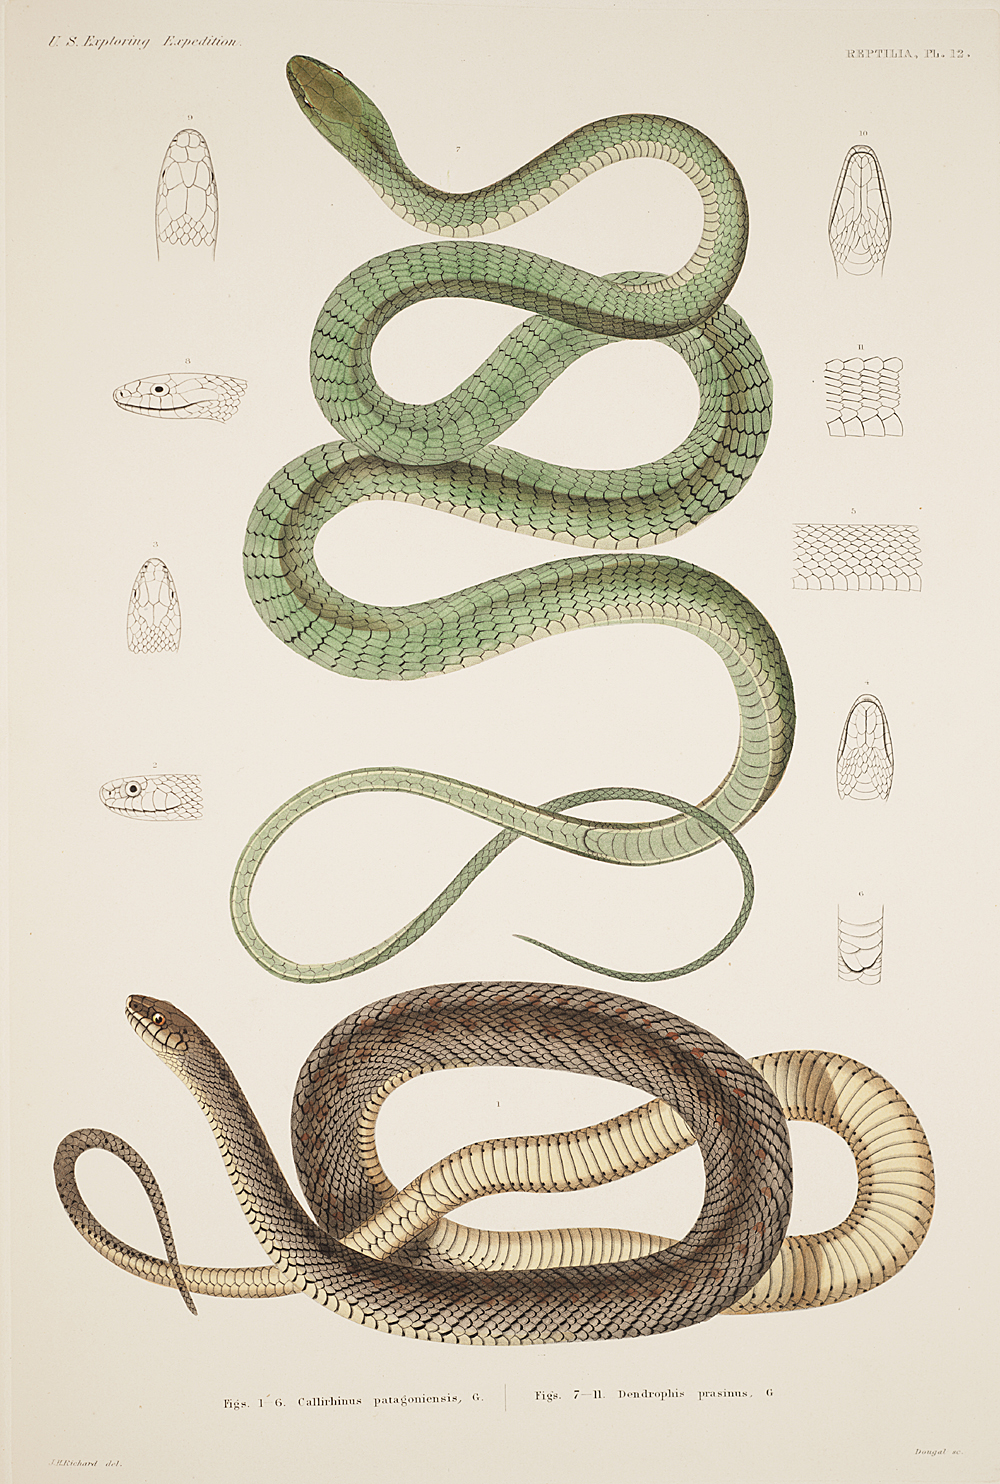 Reptilia, Plate 12,  Image number:sil19-31-043b